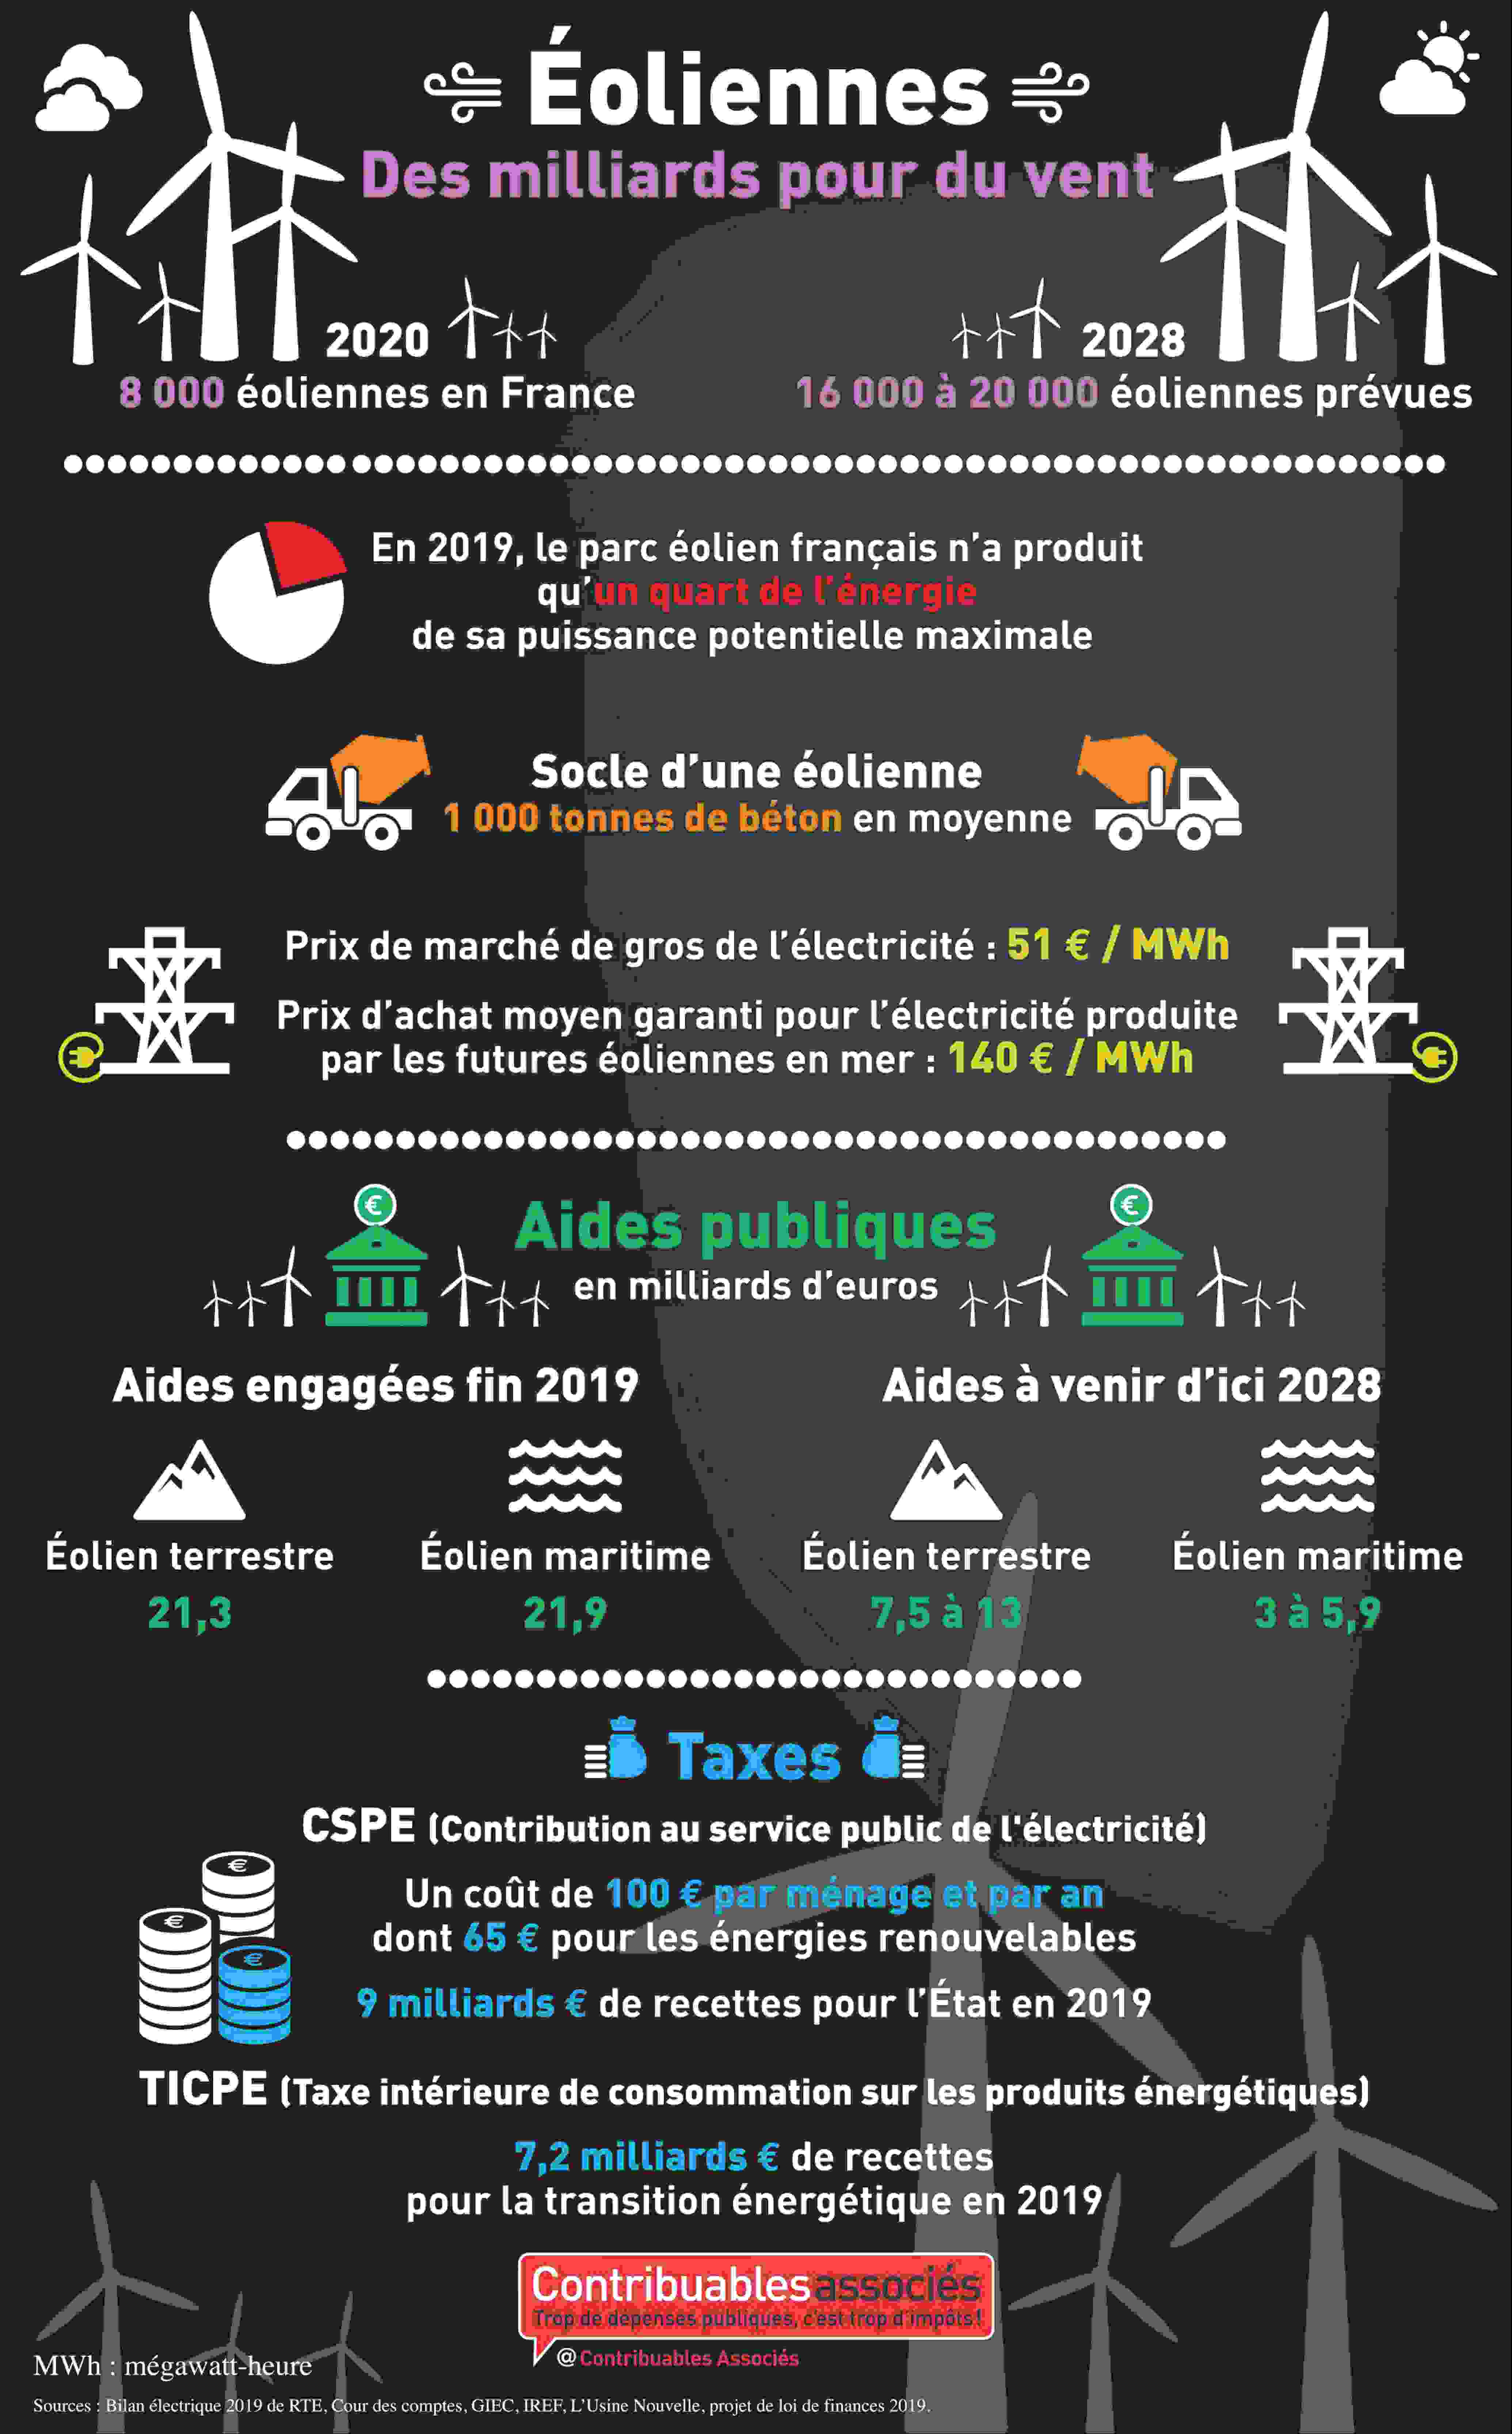 infographie eoliennes cout contribuable